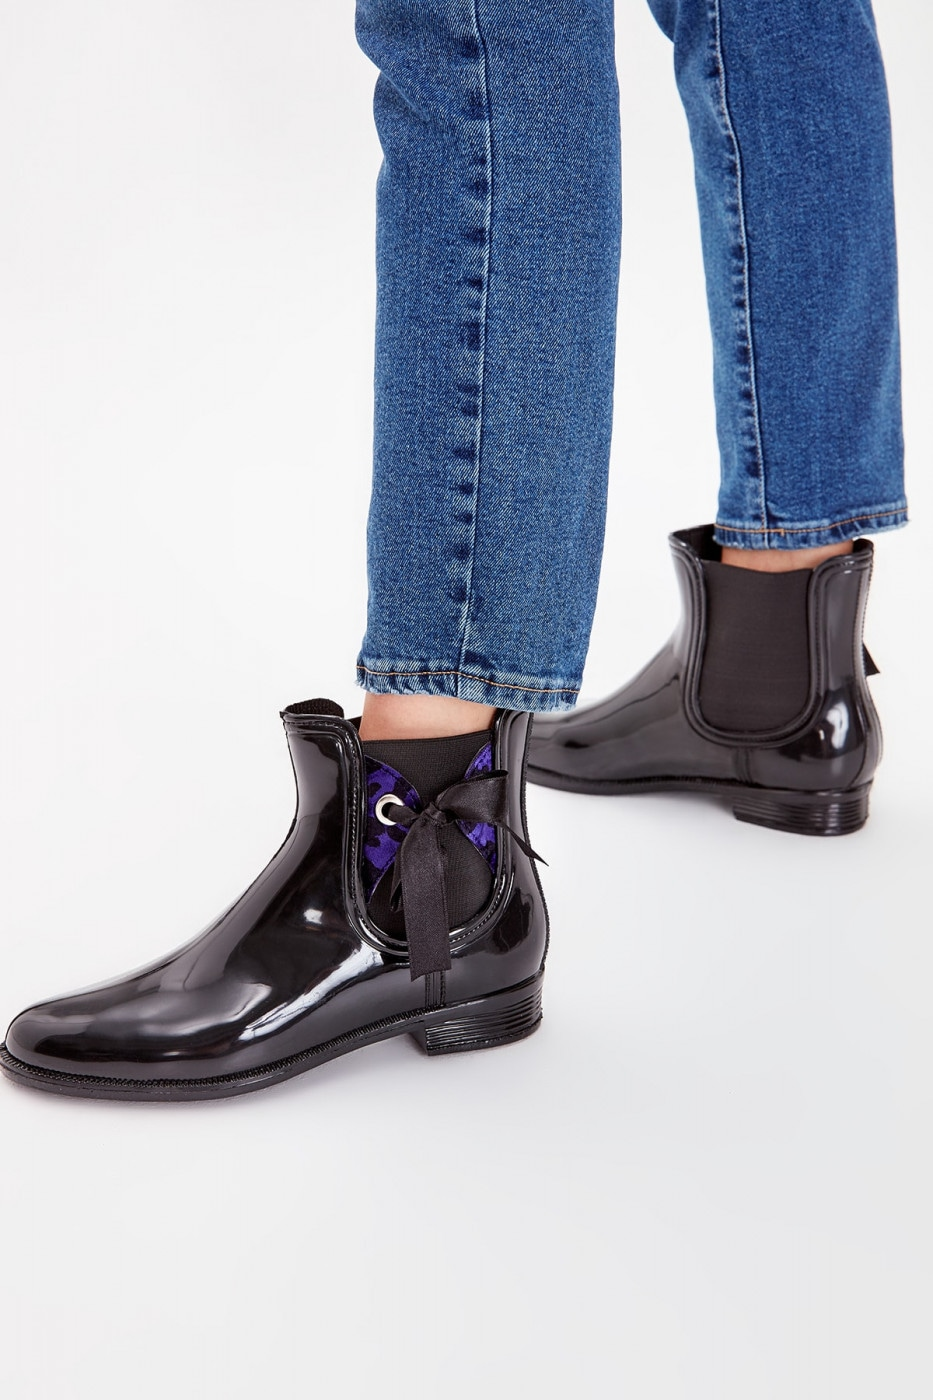 Trendyol Black Ribbon Detailed Women's Rain Boots